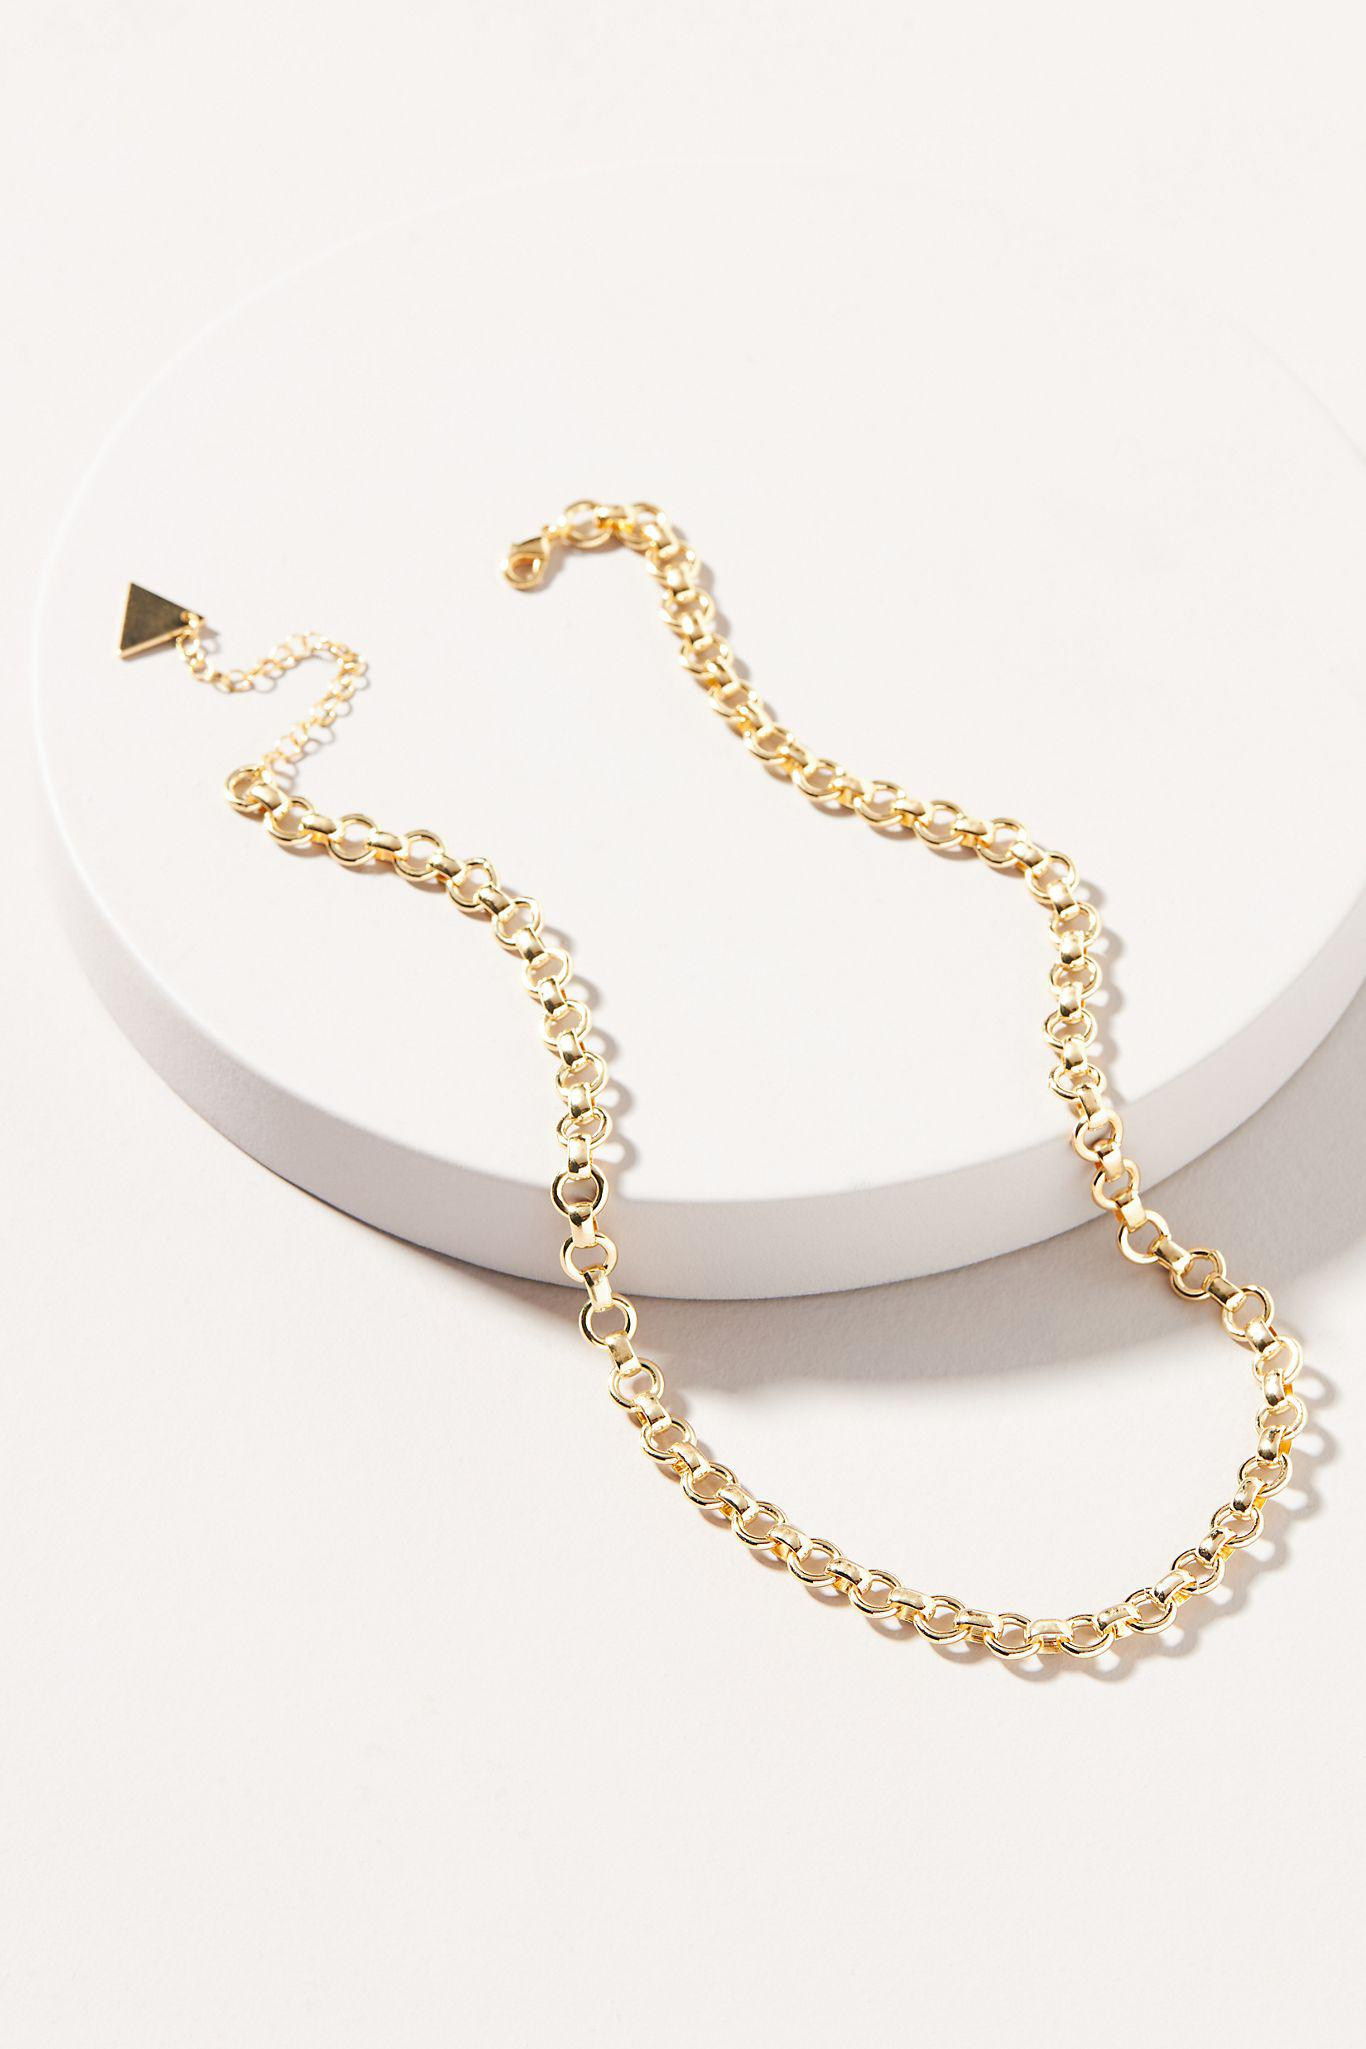 Lyra Chain Necklace